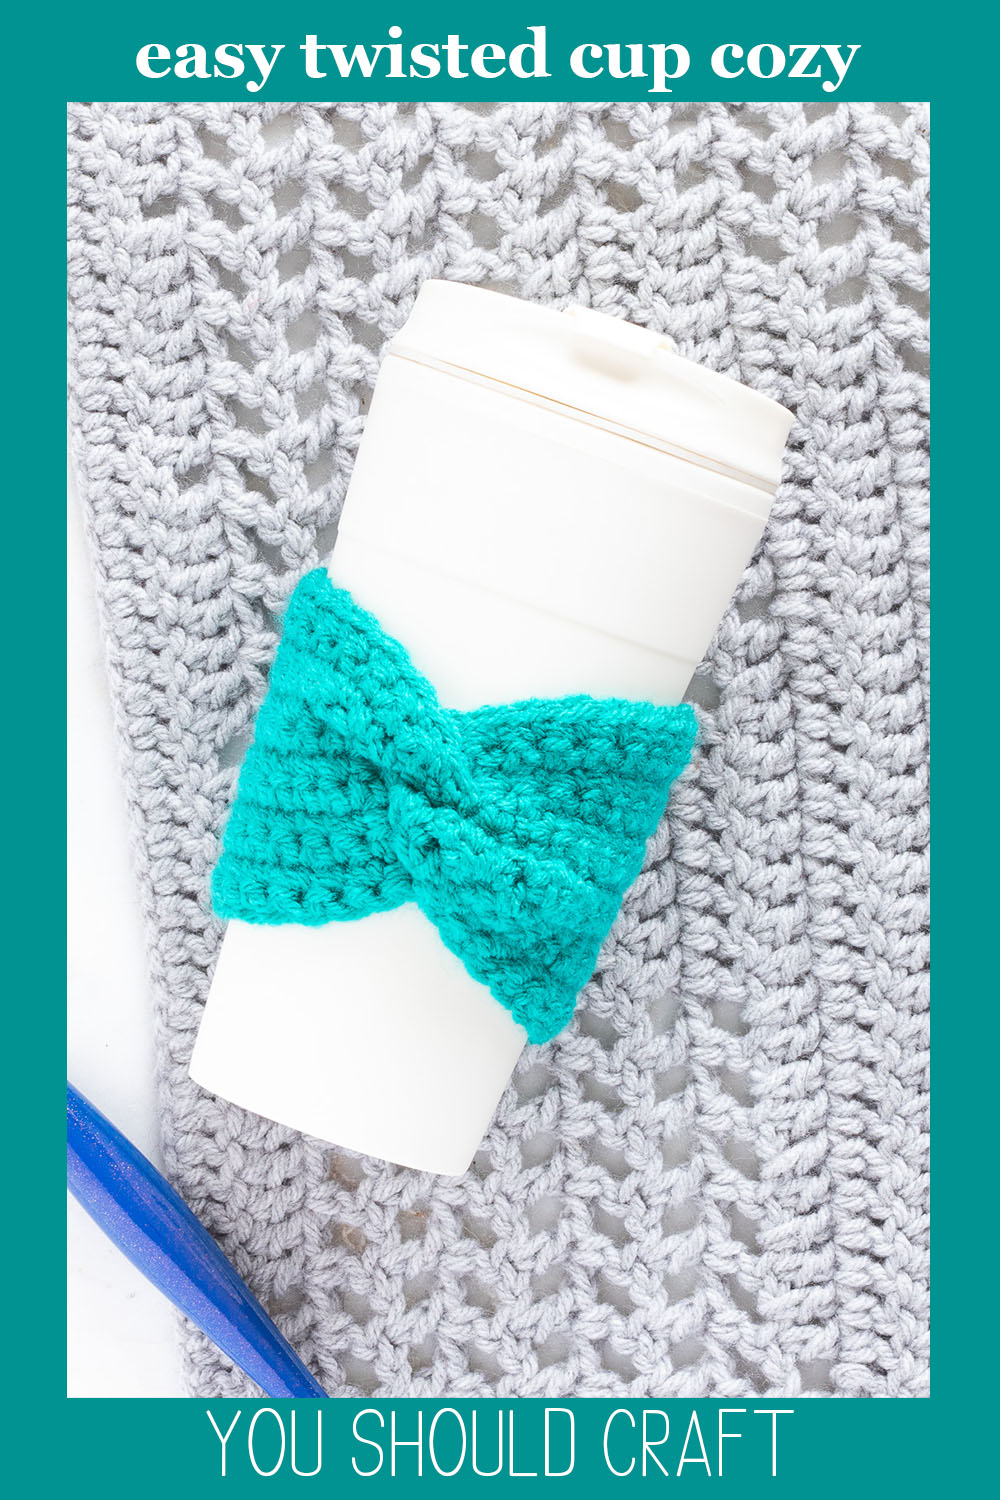 cream-colored coffee cup with a teal crochet cup cozy on a grey background